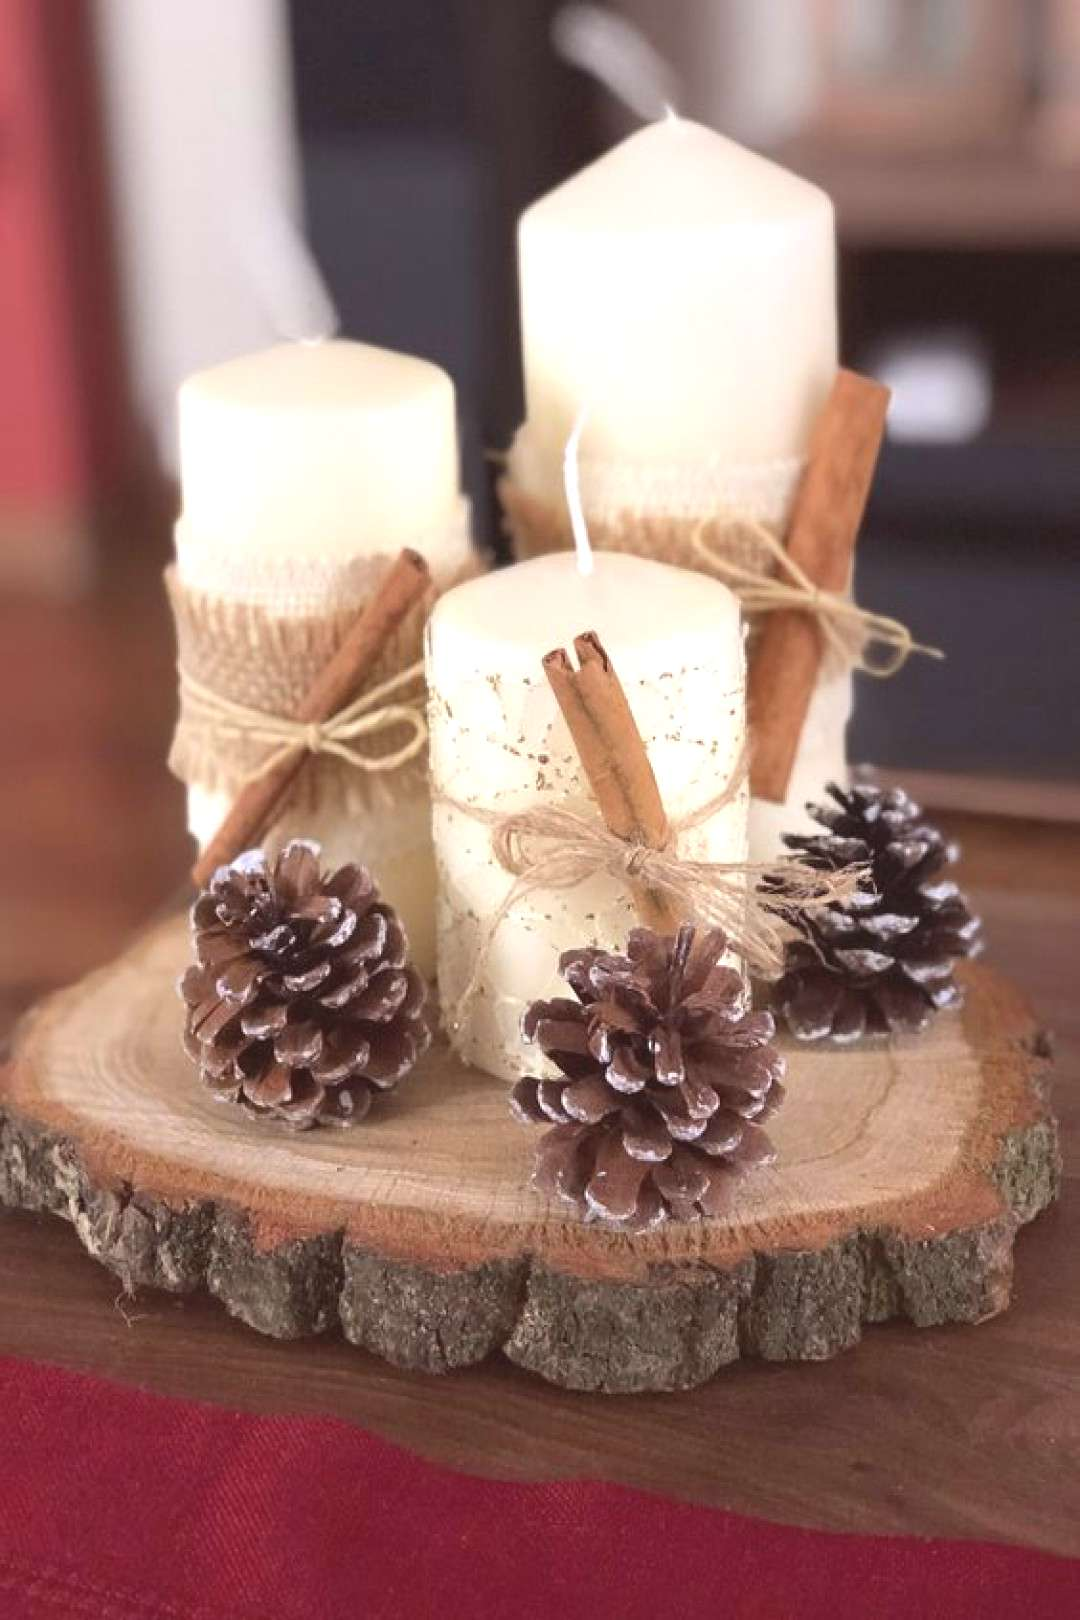 70+ Simple And Popular Christmas Decorations Table Decorations Christmas Candles DIY Christmas C